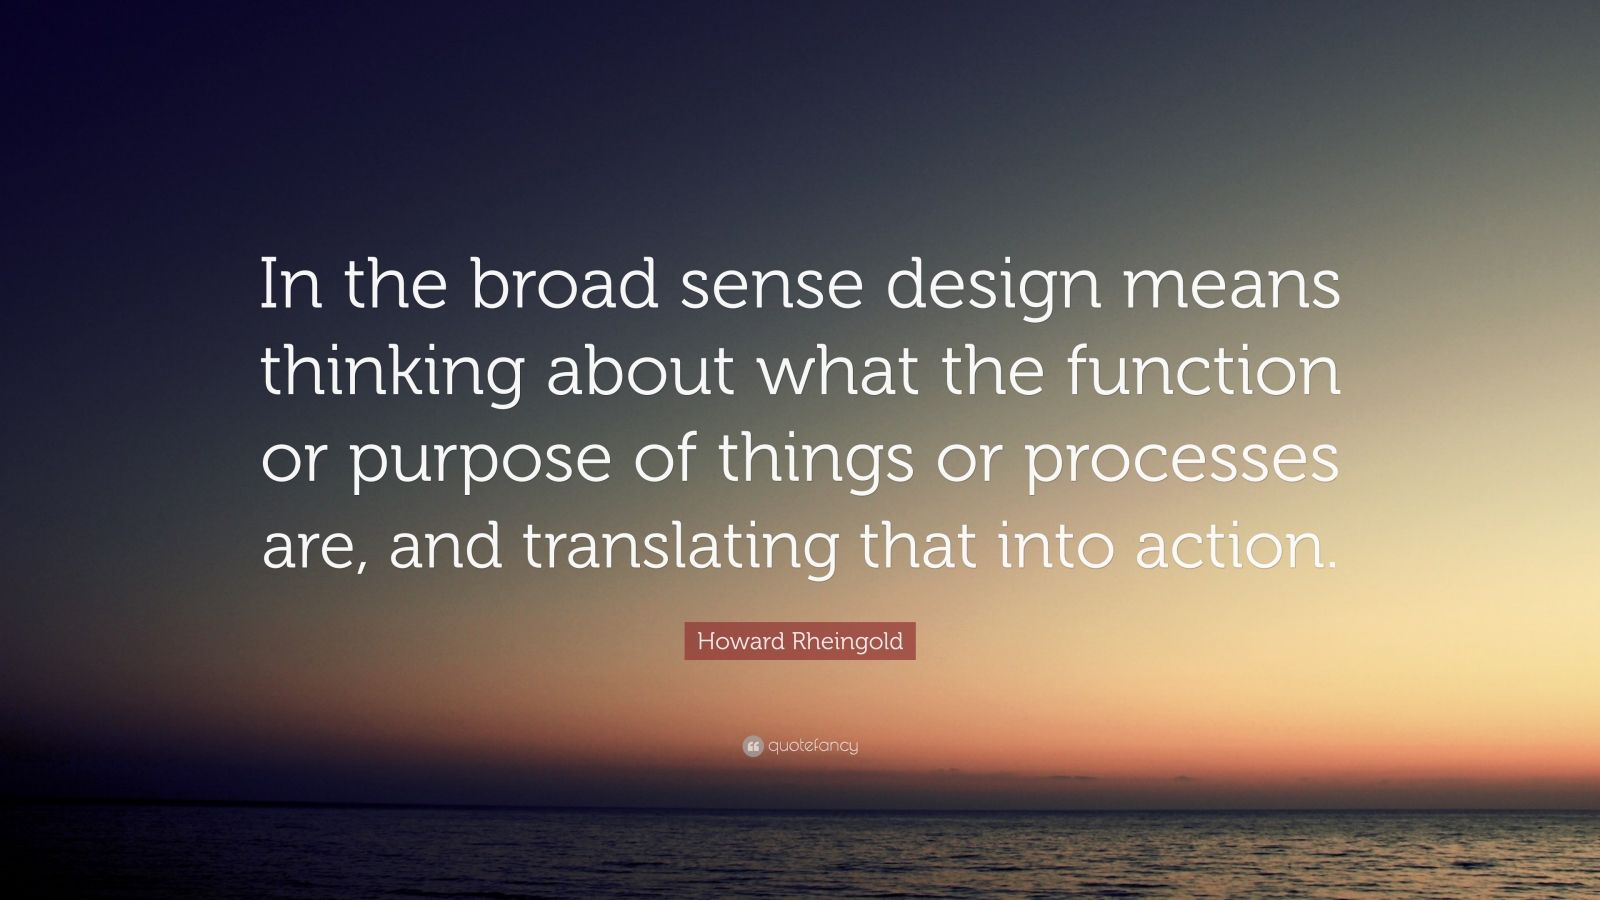 """Howard Rheingold Quote: """"In the broad sense design means thinking about what the function or purpose of things or processes are, and translating that into action."""""""